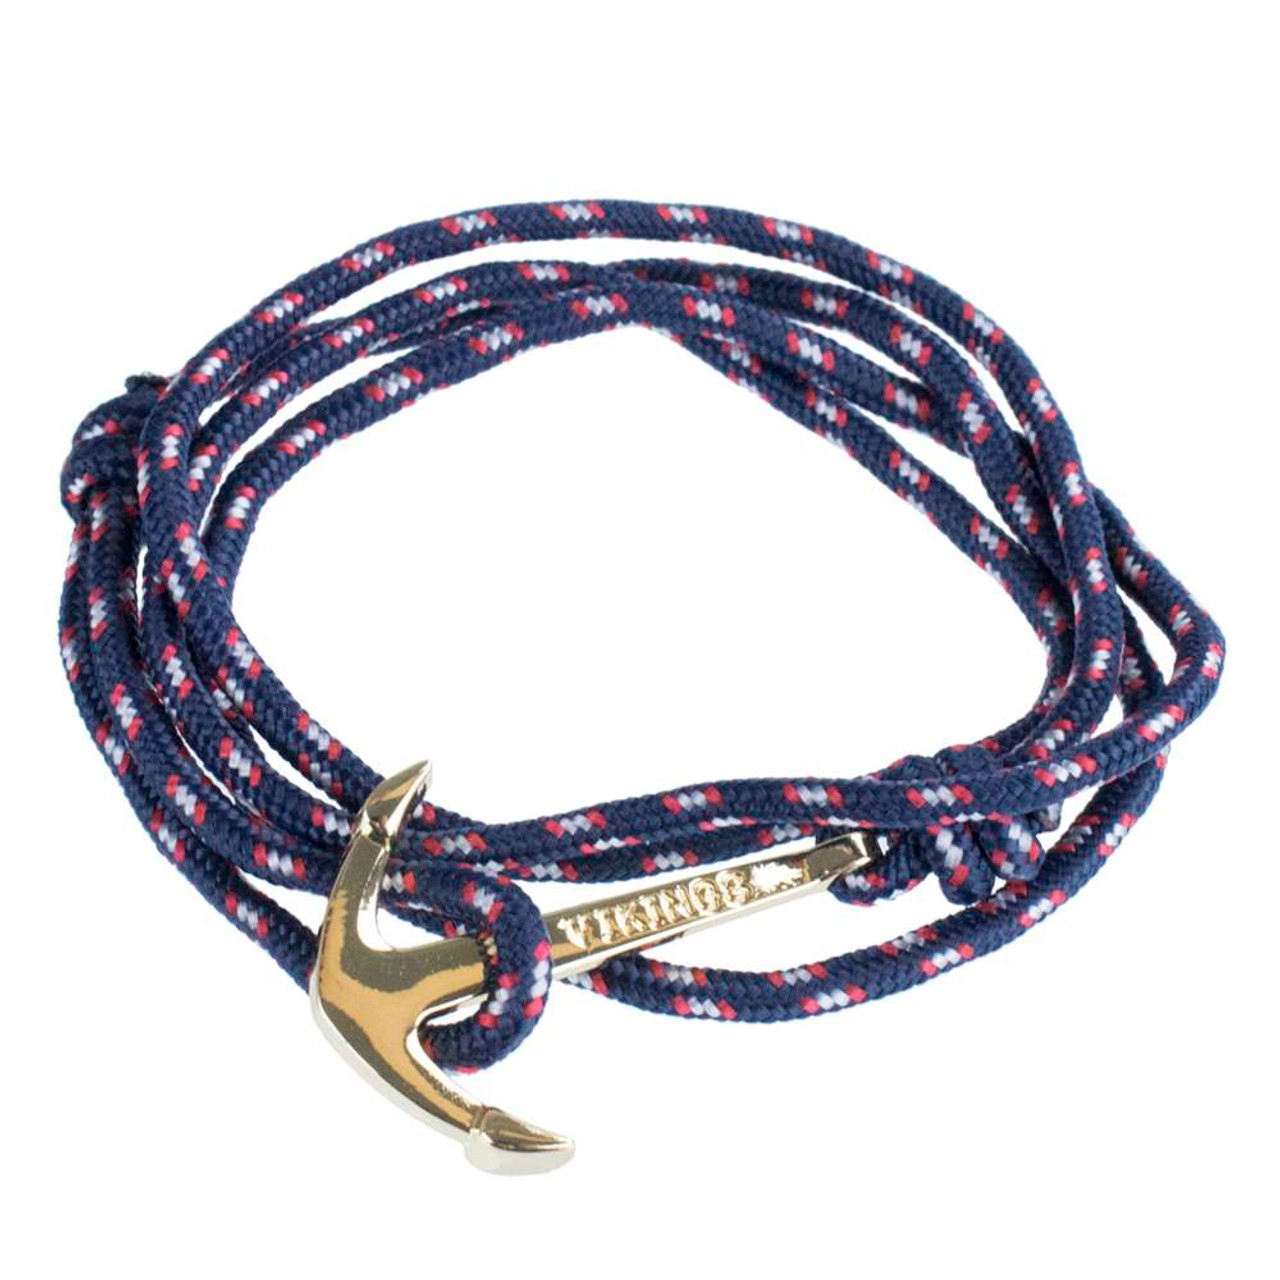 e fashion navy jewellery yeovil psj blue bracelet